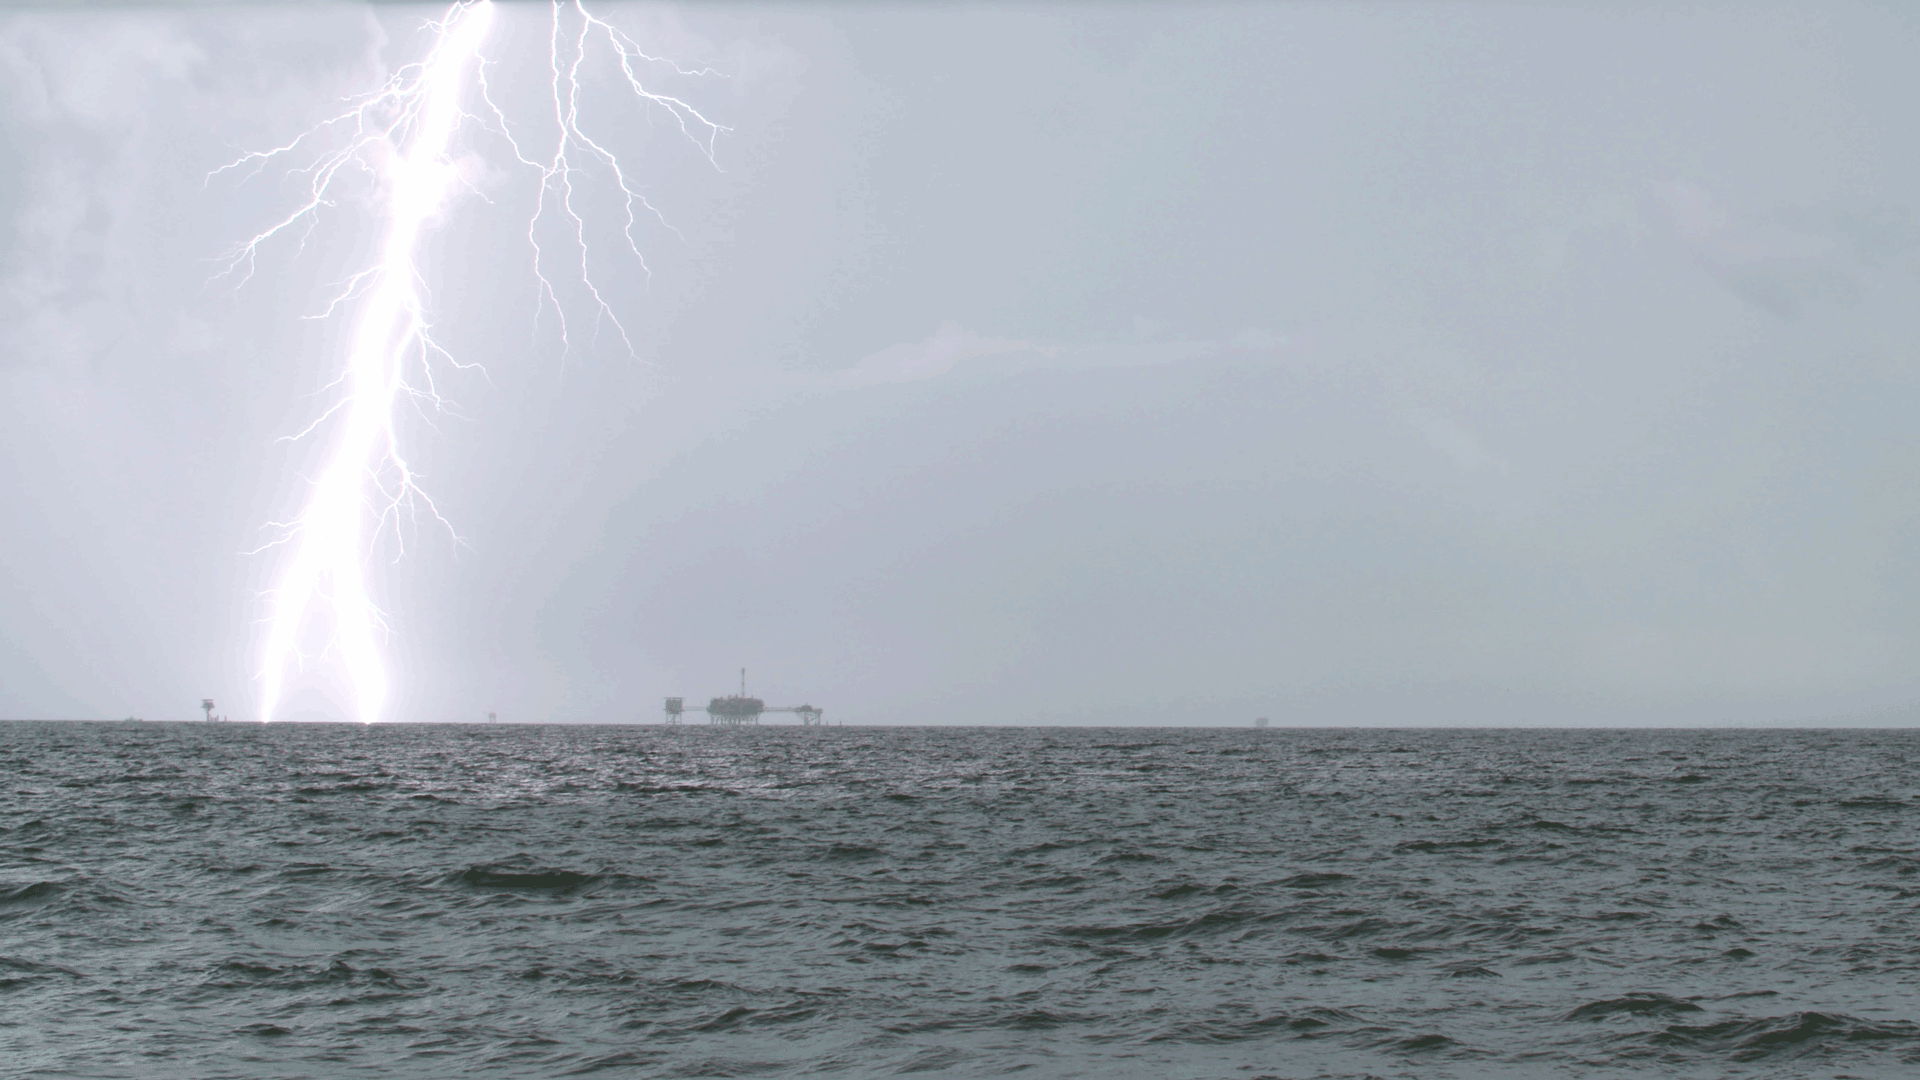 A lightning strike captured in slow motion while on the coast of Dauphine Island, Alabama.  The video was 4K resolution.